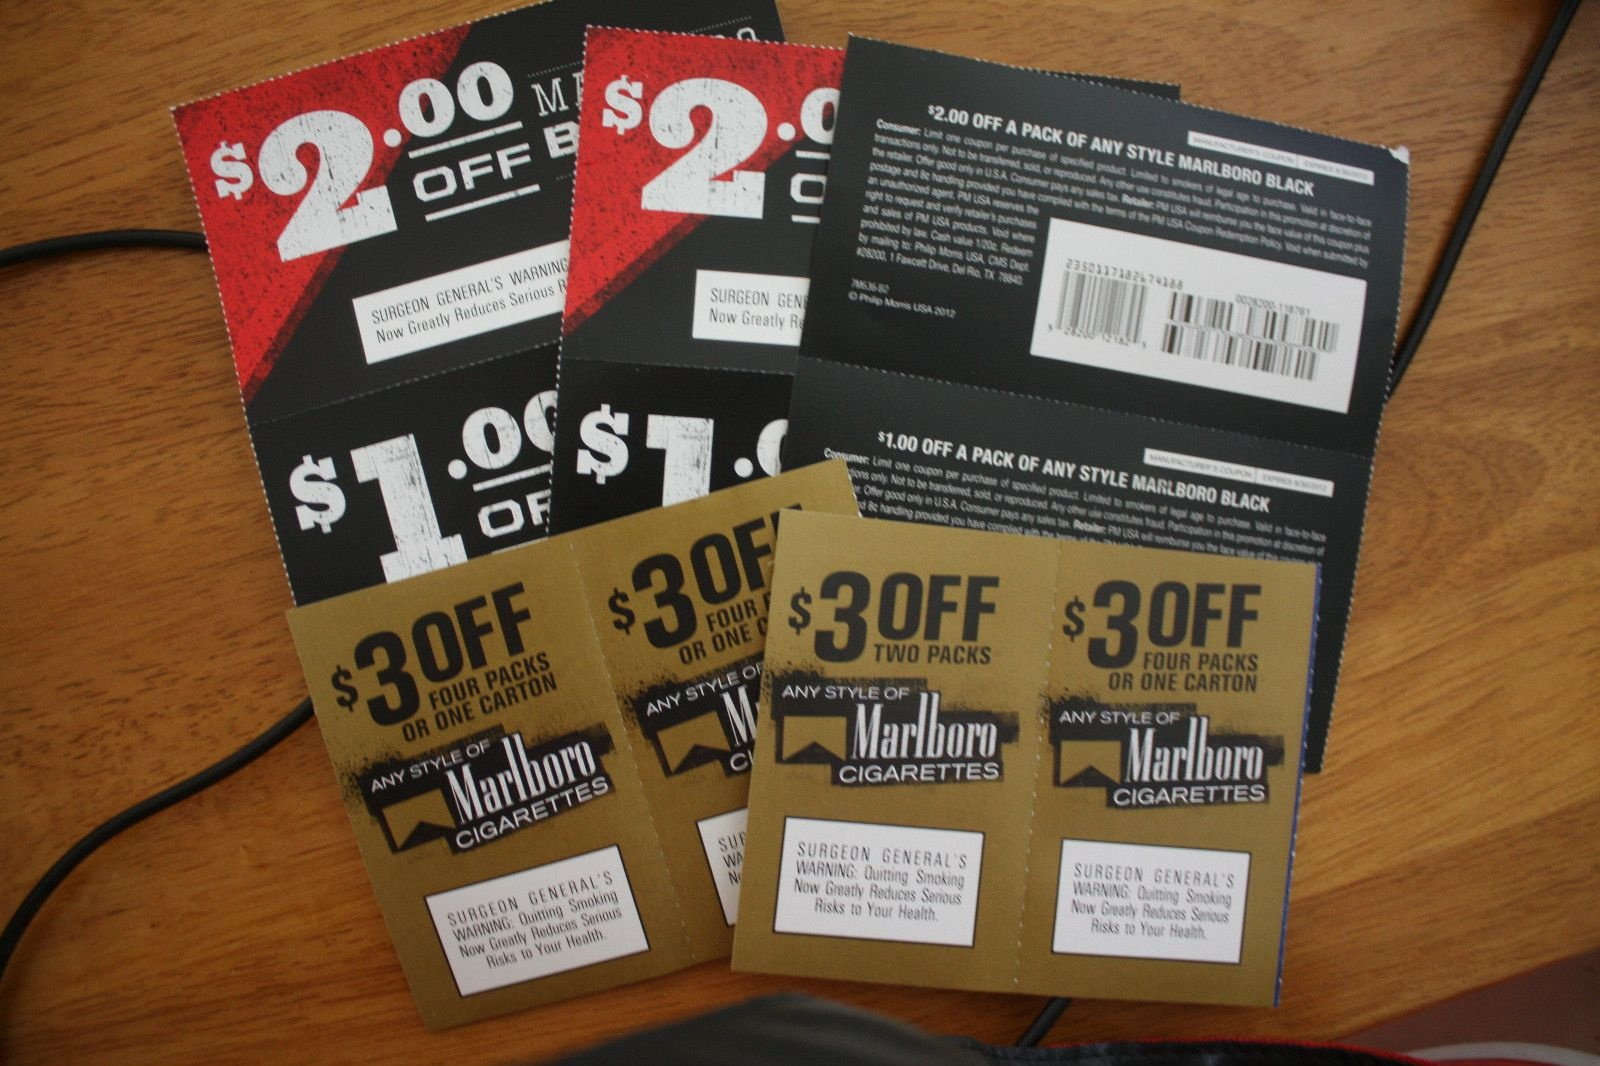 Pindraven Lee On Cigarette Coupons In 2019 | Cigarette Coupons - Free Pack Of Cigarettes Printable Coupon